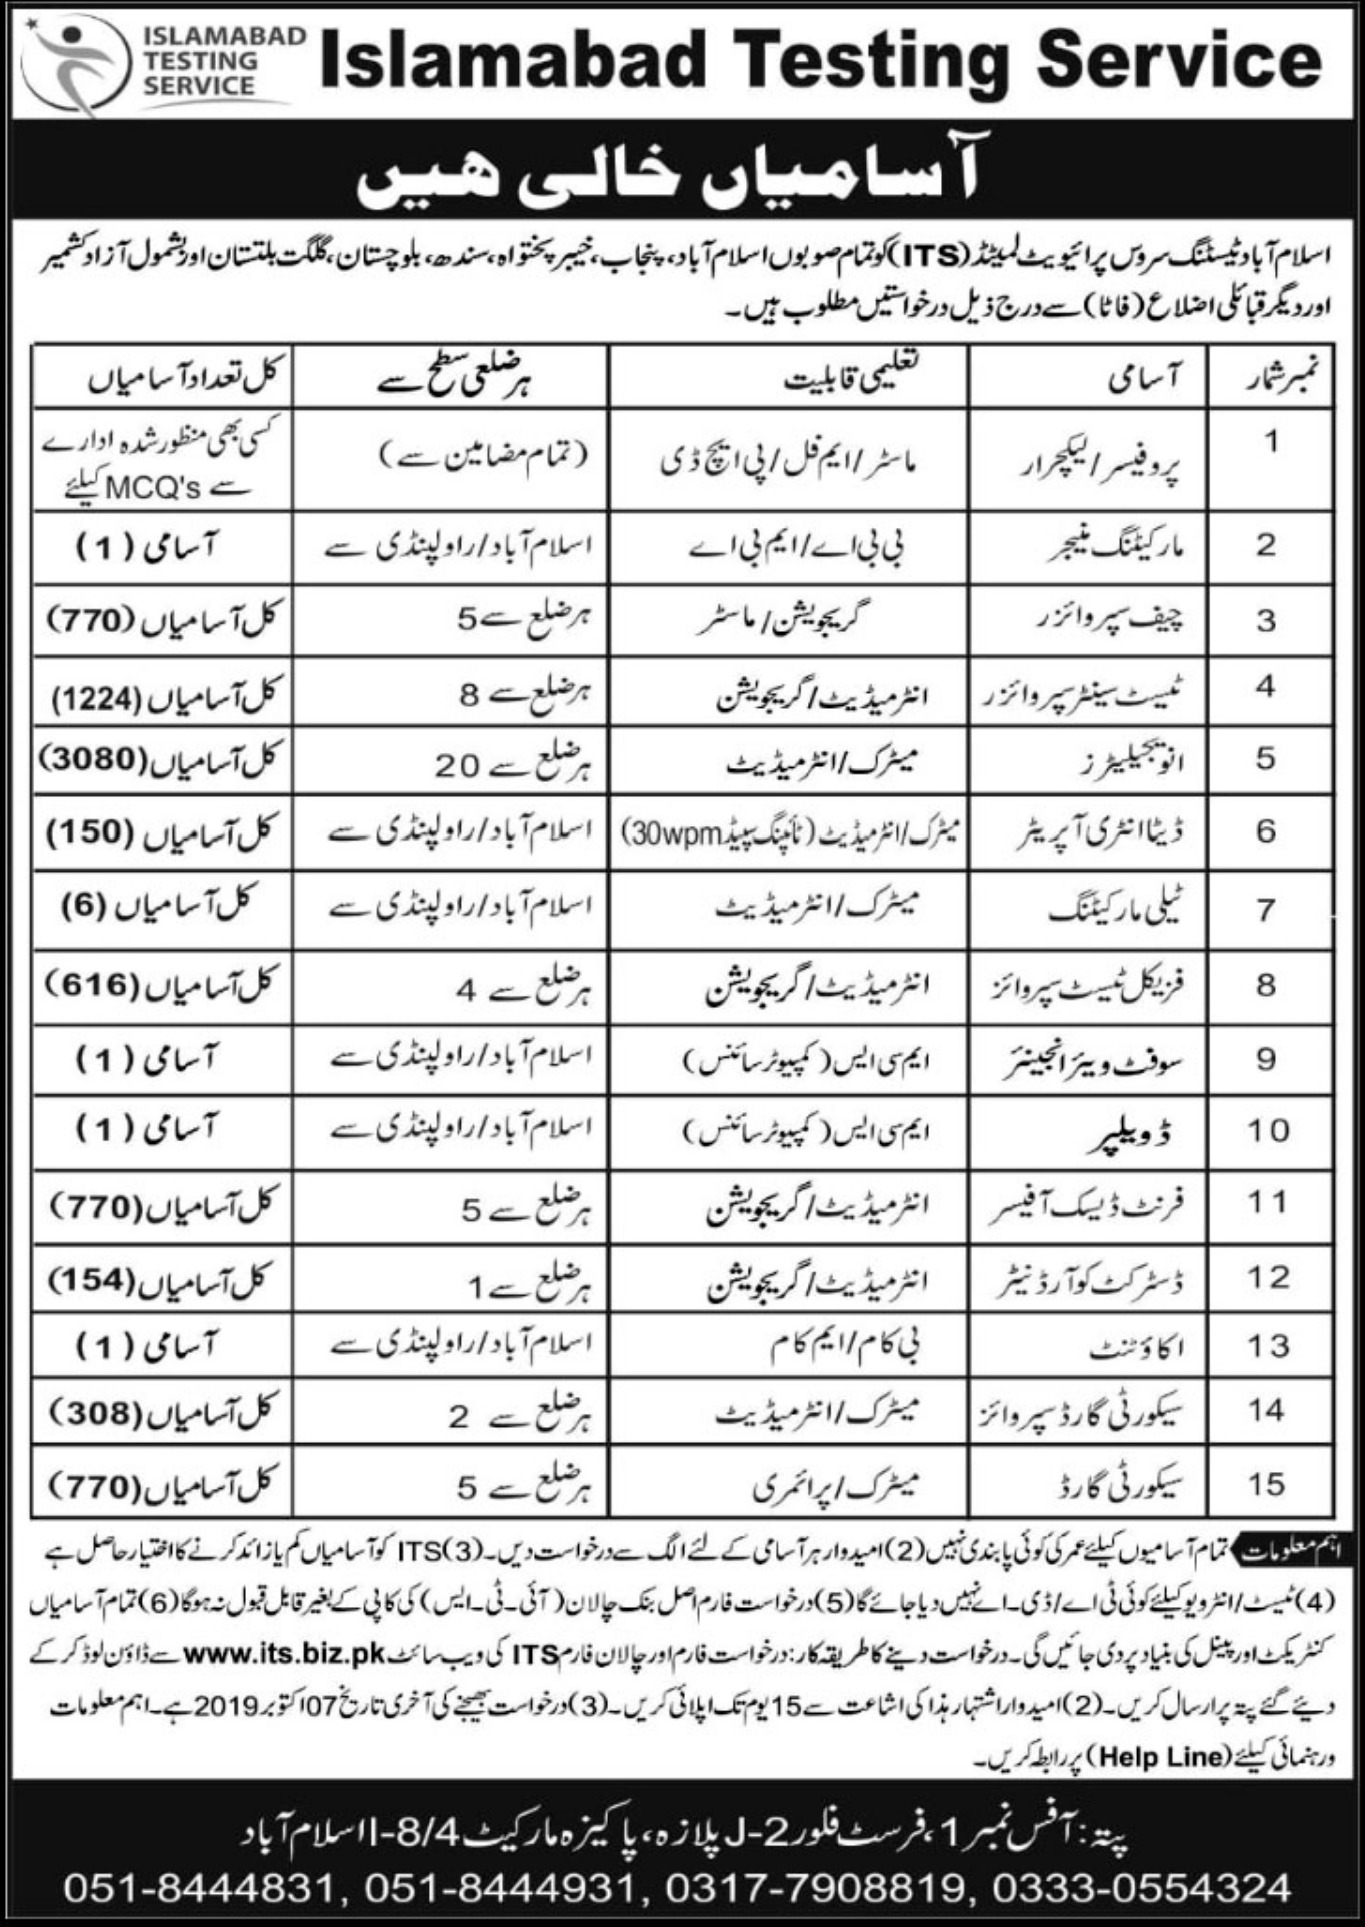 Islamabad Testing Service ITS Jobs 2019 Pakistan